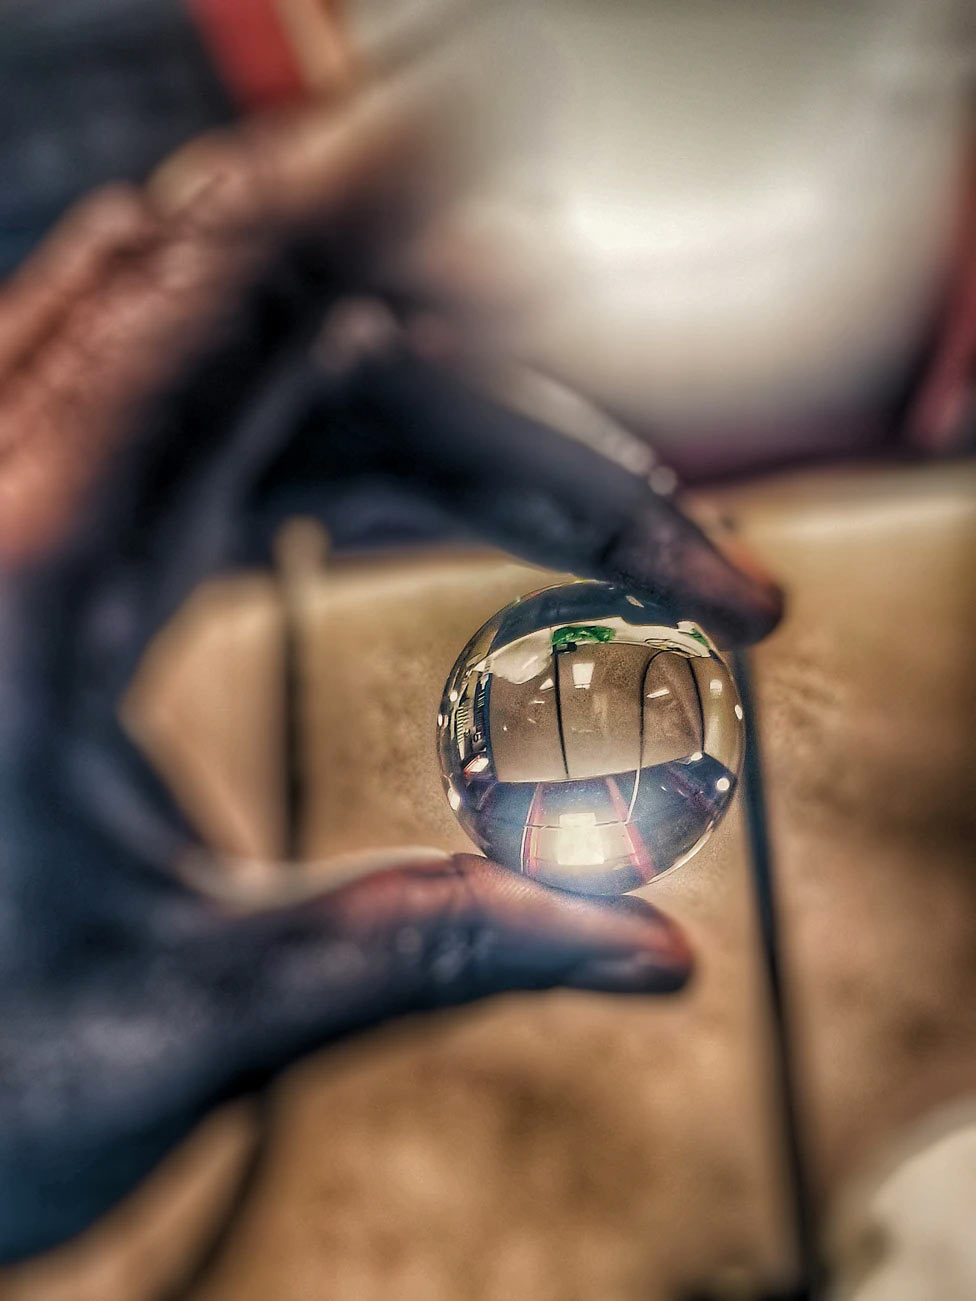 Man holding glass ball